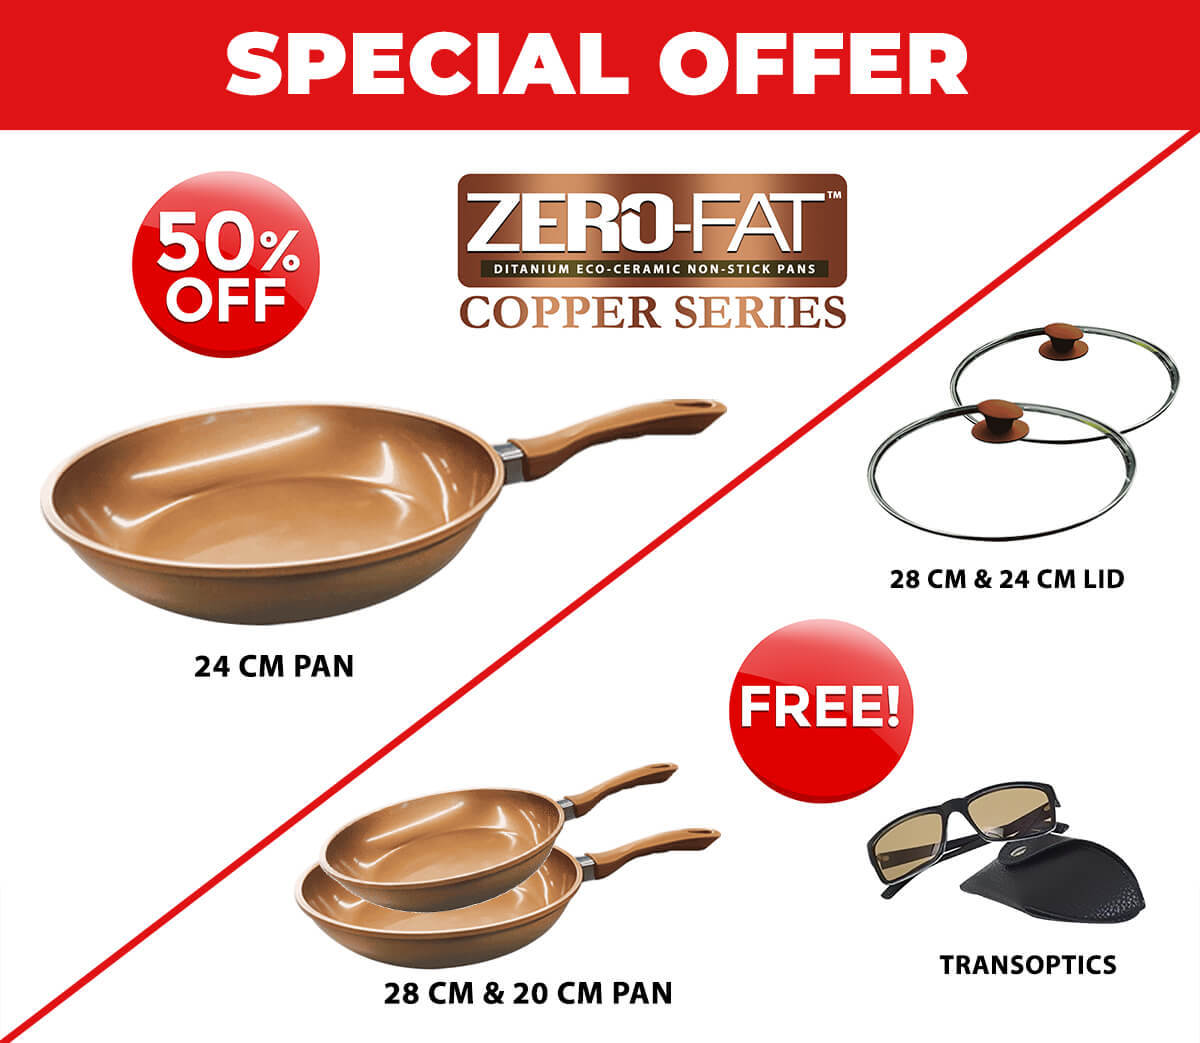 zer-fat-copper-series-special-offer